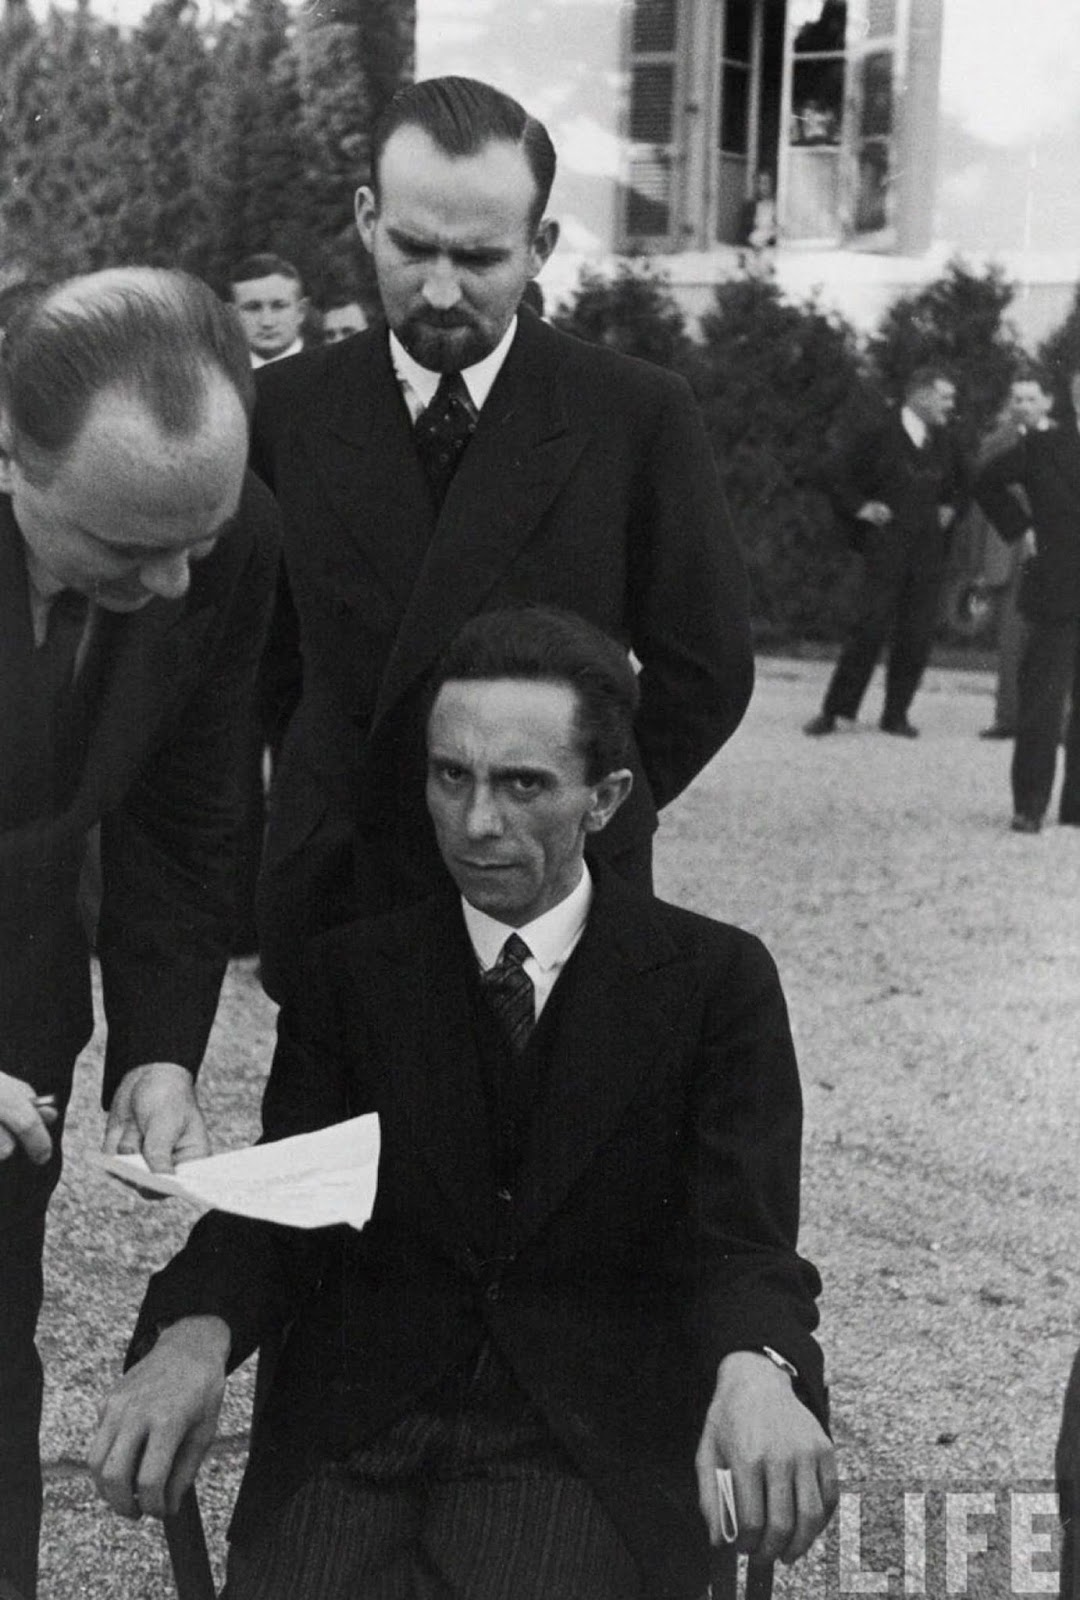 Goebbels smiled at him until he learned that Eisenstaedt was Jewish – a moment Eisenstaedt captured in this photo.